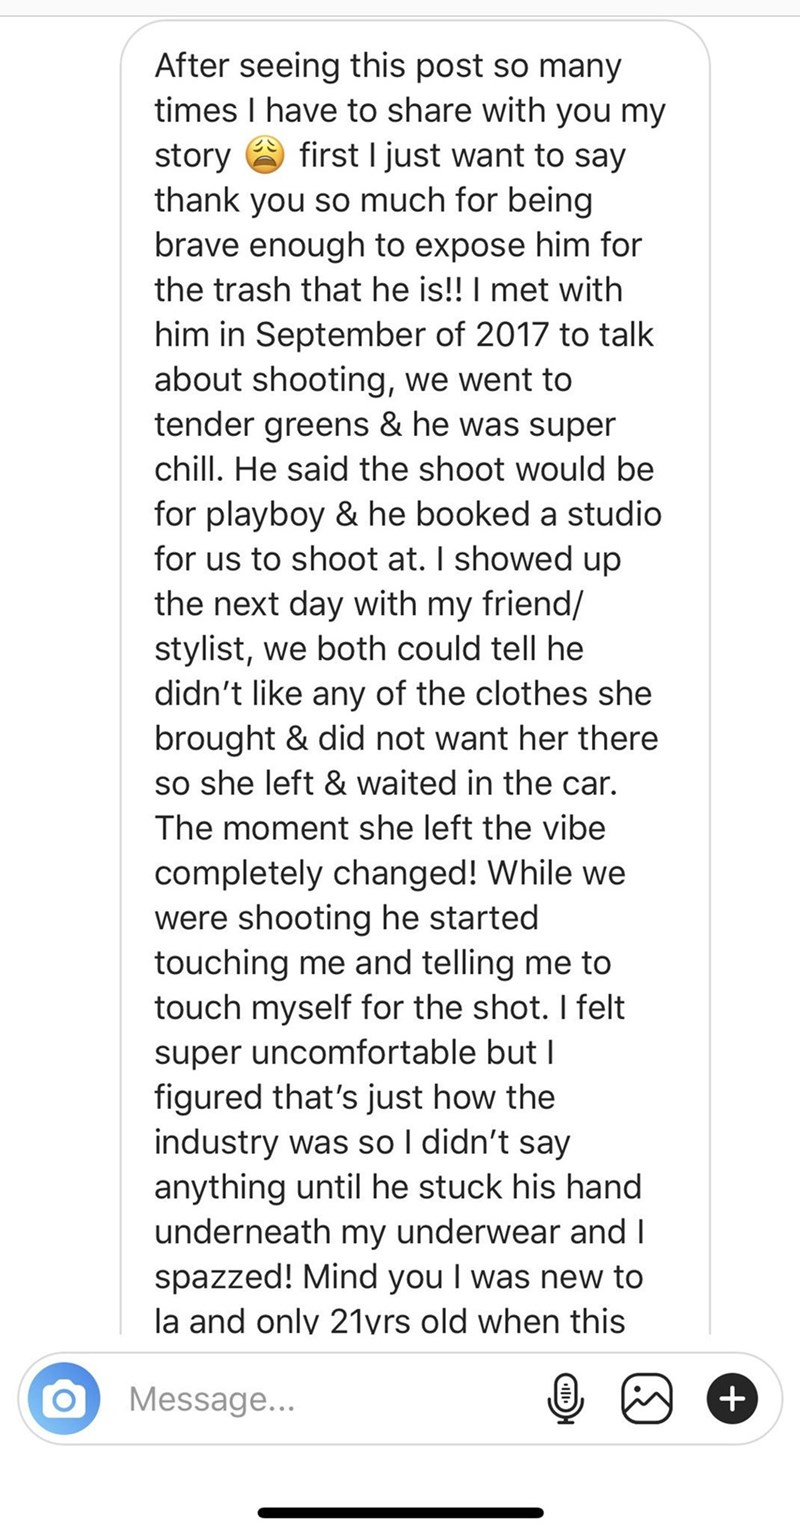 Text - After seeing this post so many times I have to share with you my first I just want to say story thank you so much for being brave enough to expose him for the trash that he is!! I met with him in September of 2017 to talk about shooting, we went to tender greens & he was super chill. He said the shoot would be for playboy & he booked a studio for us to shoot at. I showed up the next day with my friend/ stylist, we both could tell he didn't like any of the clothes she brought & did not wan